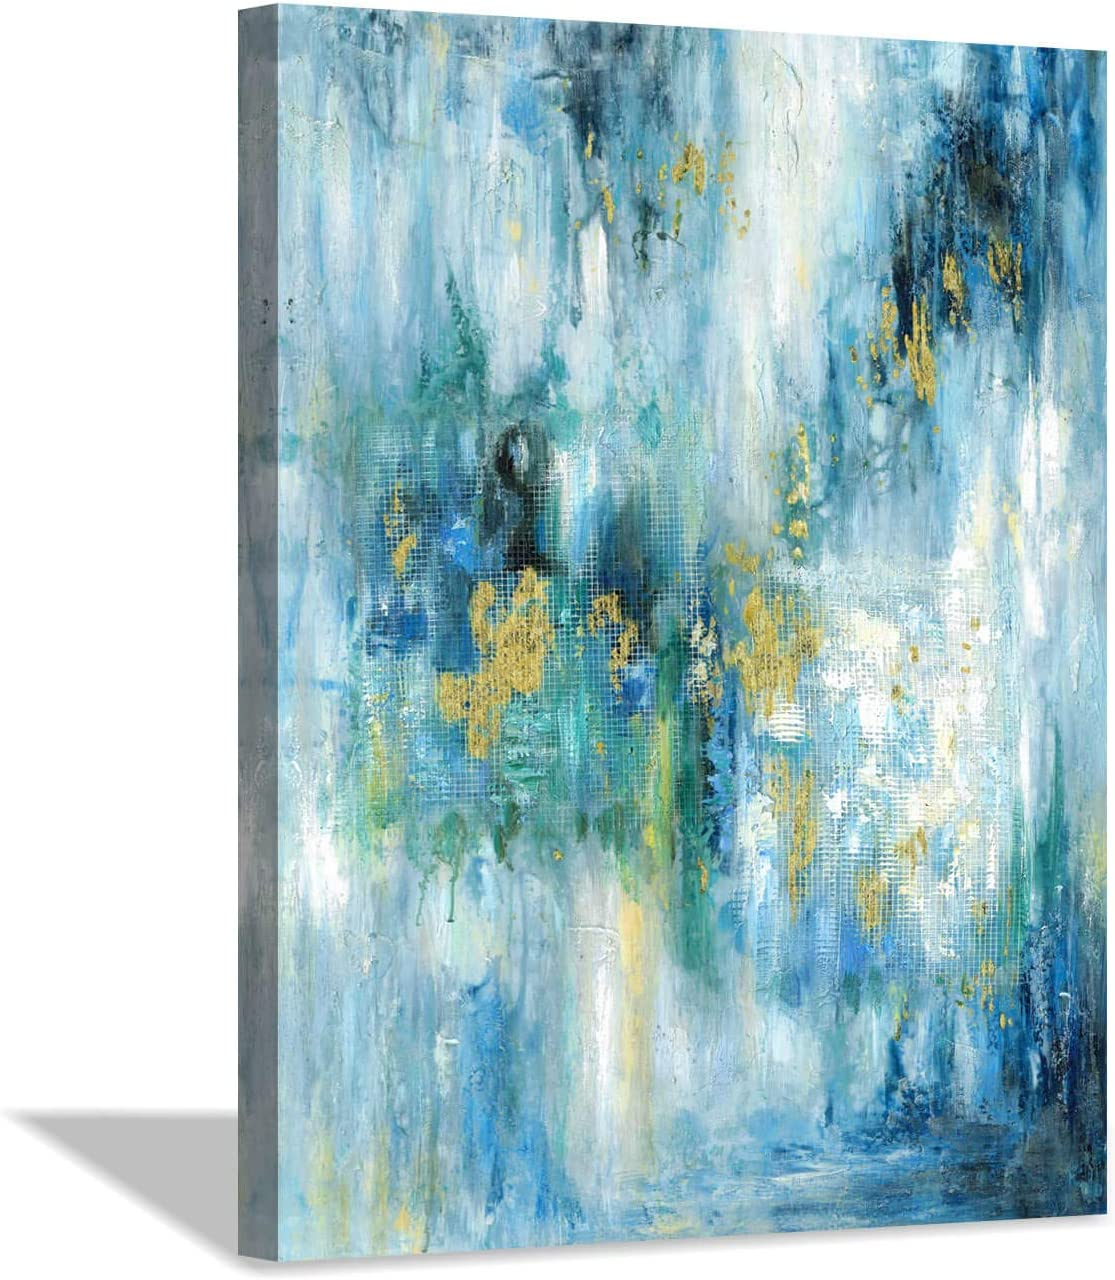 Hardy Gallery Blue Abstract Painting Wall Art: Modern Picture on Canvas Artwork for Bedroom (24'' x 18'' x 1 Panel)